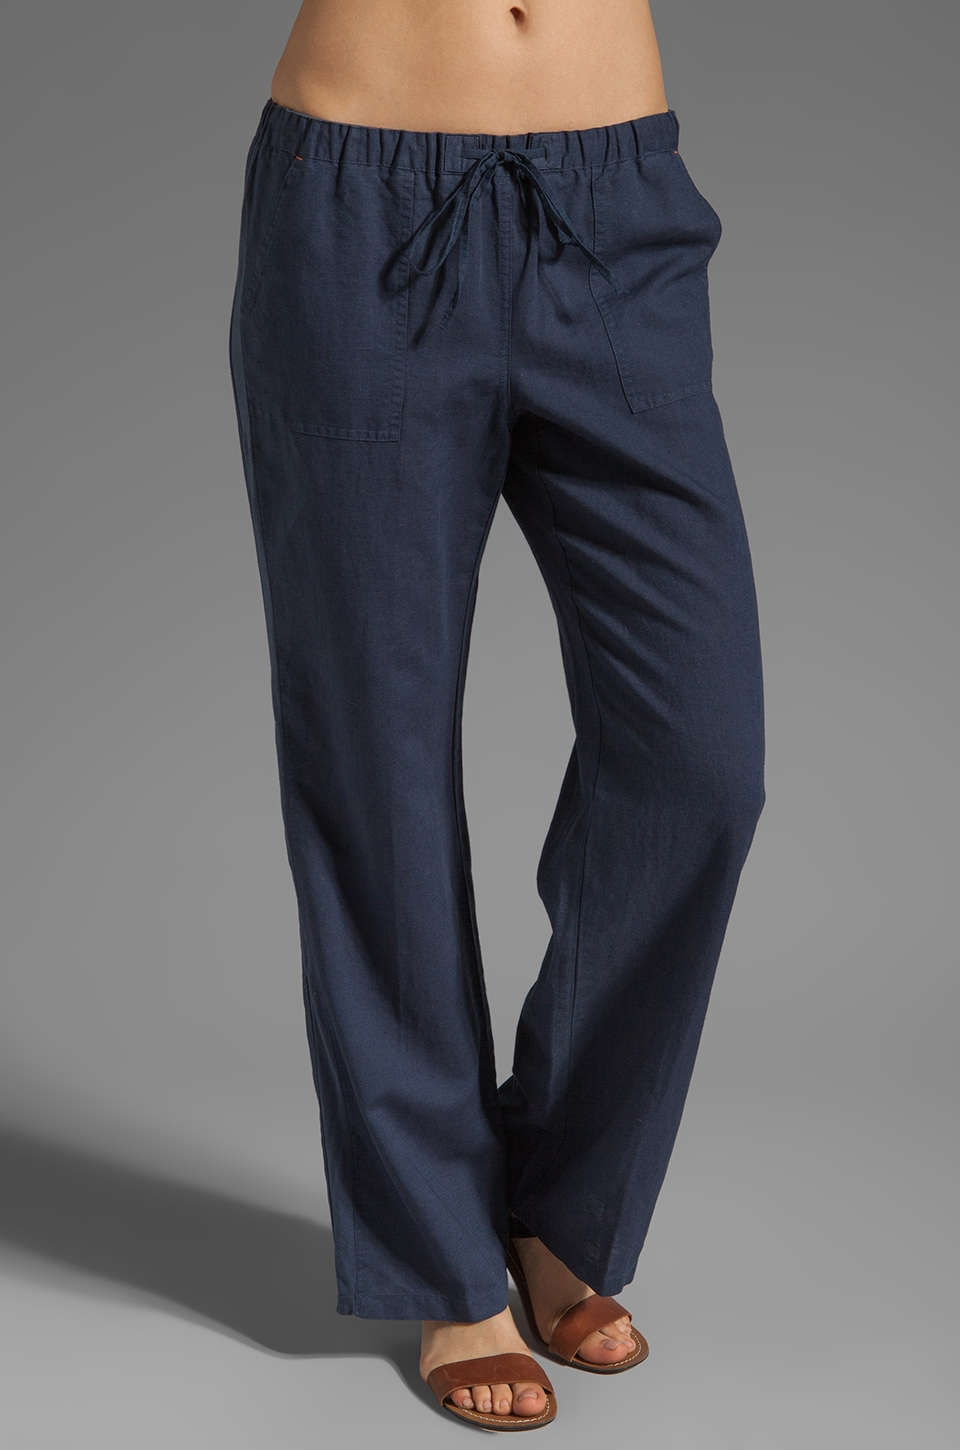 C&C California Linen Pant in Navy